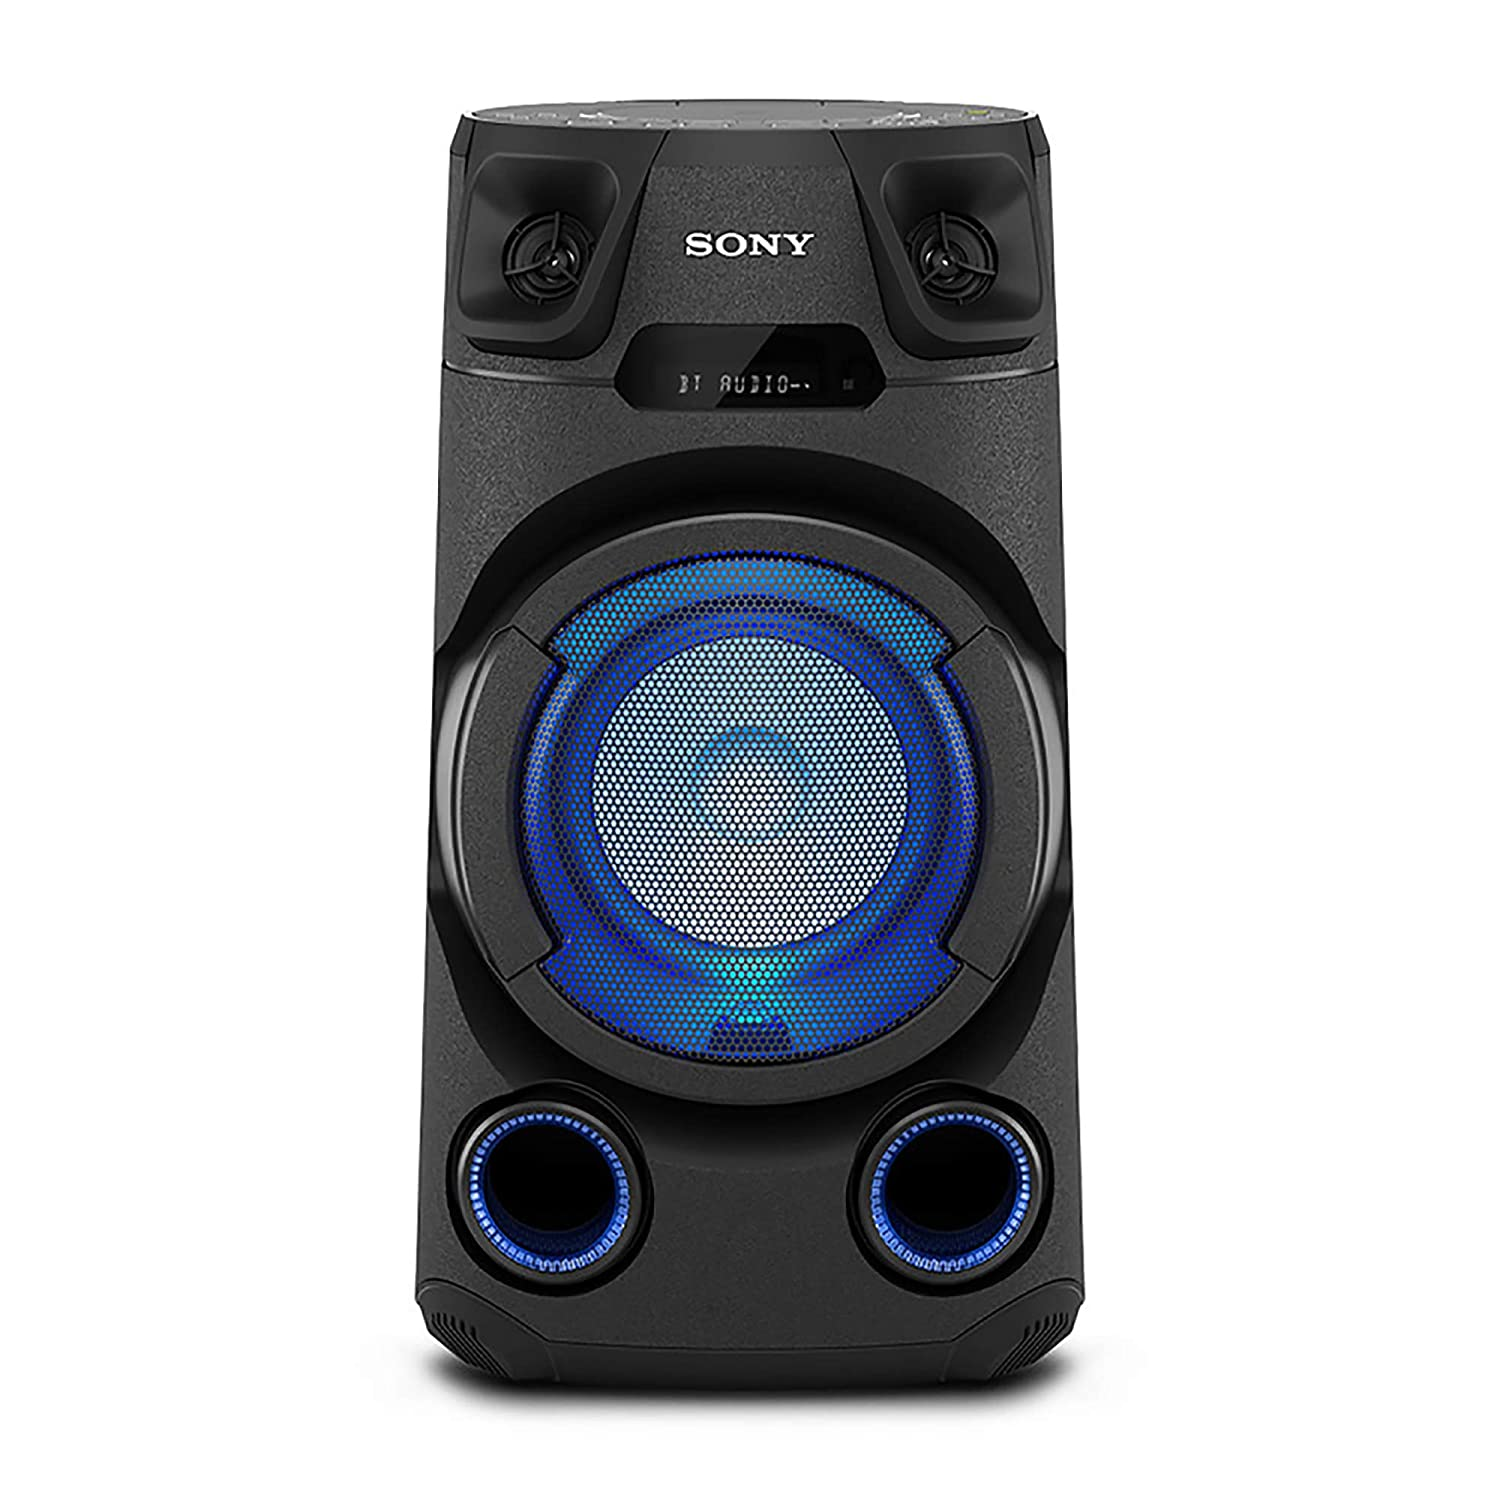 Sony MHC-V13 High Power Party Speaker with Bluetooth Technology (Karaoke,Speaker Light) – Black